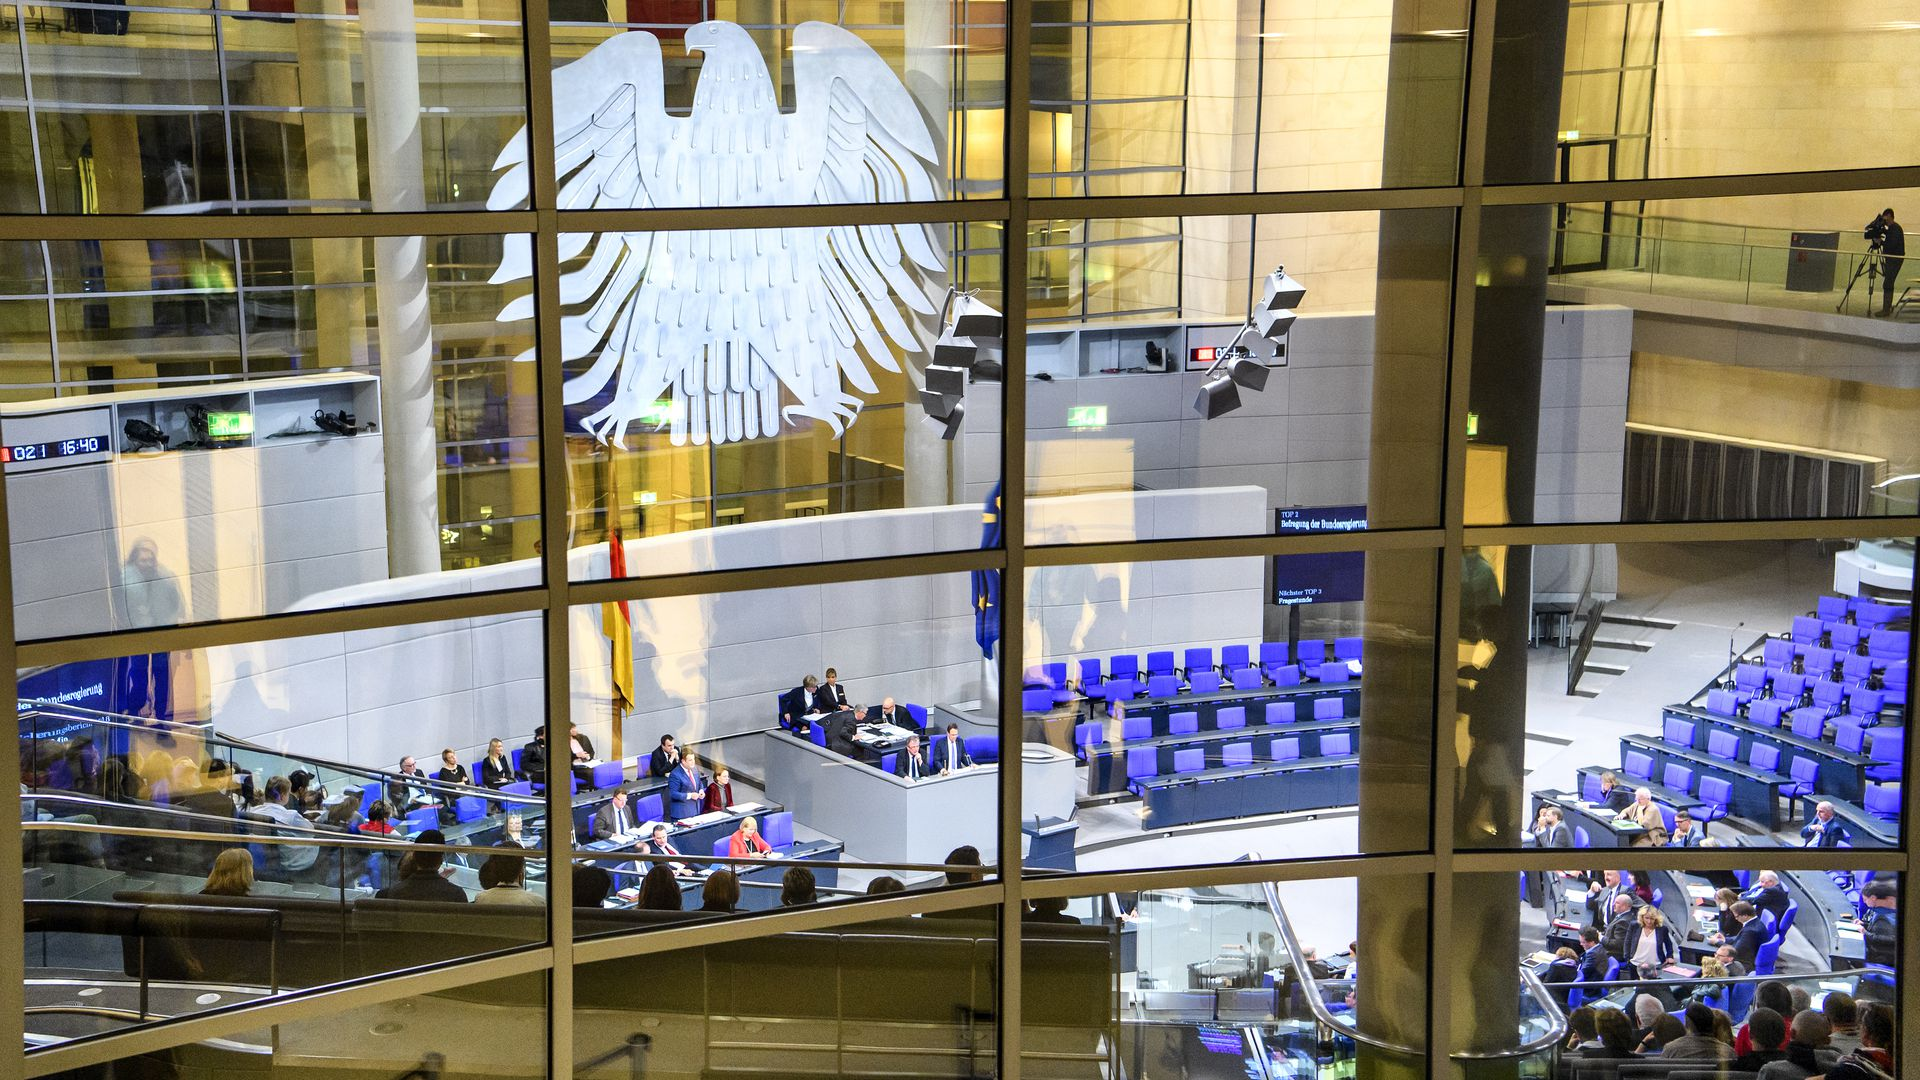 Interior of Plenary Hall (meeting room) of German Parliament (Deutscher Bundestag),